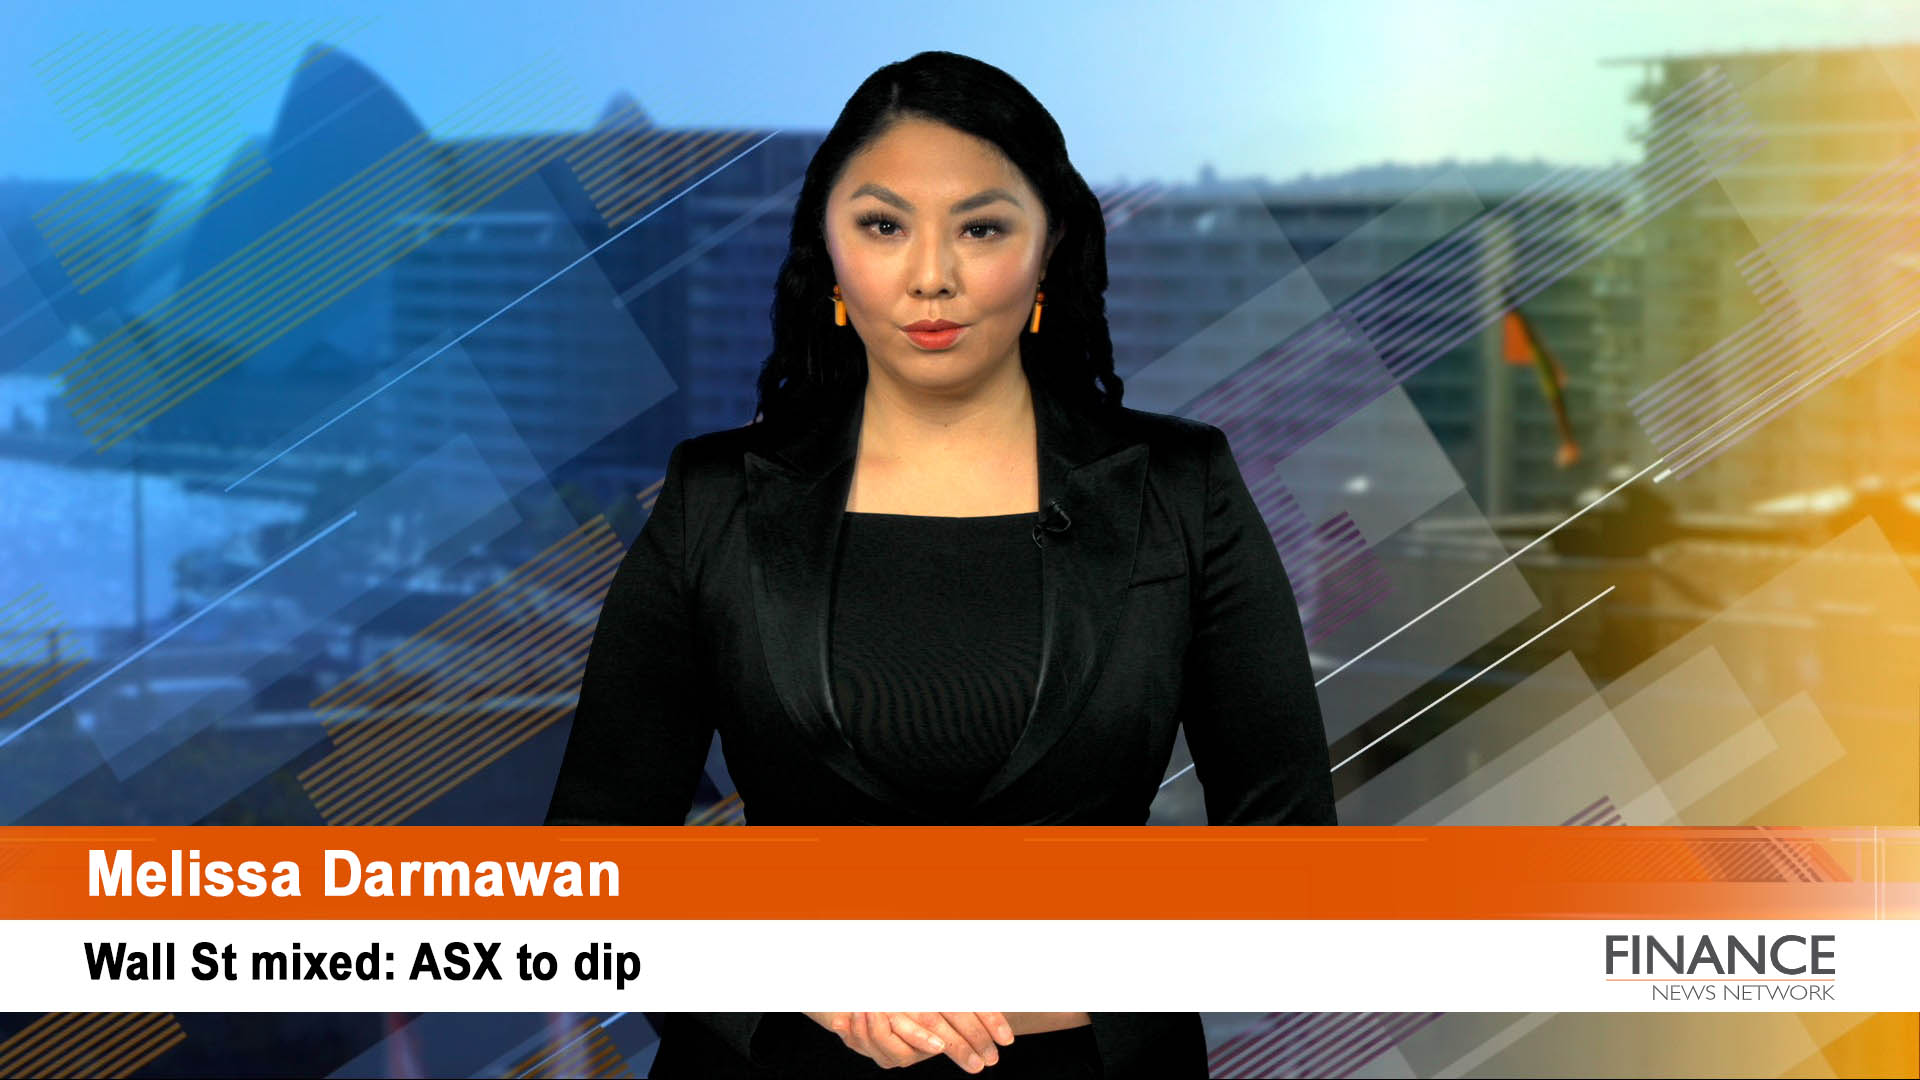 Wall St mixed, Iron ore falls on Evergrande rout, C.Suisse's take on Santos & Oil Search: ASX to dip